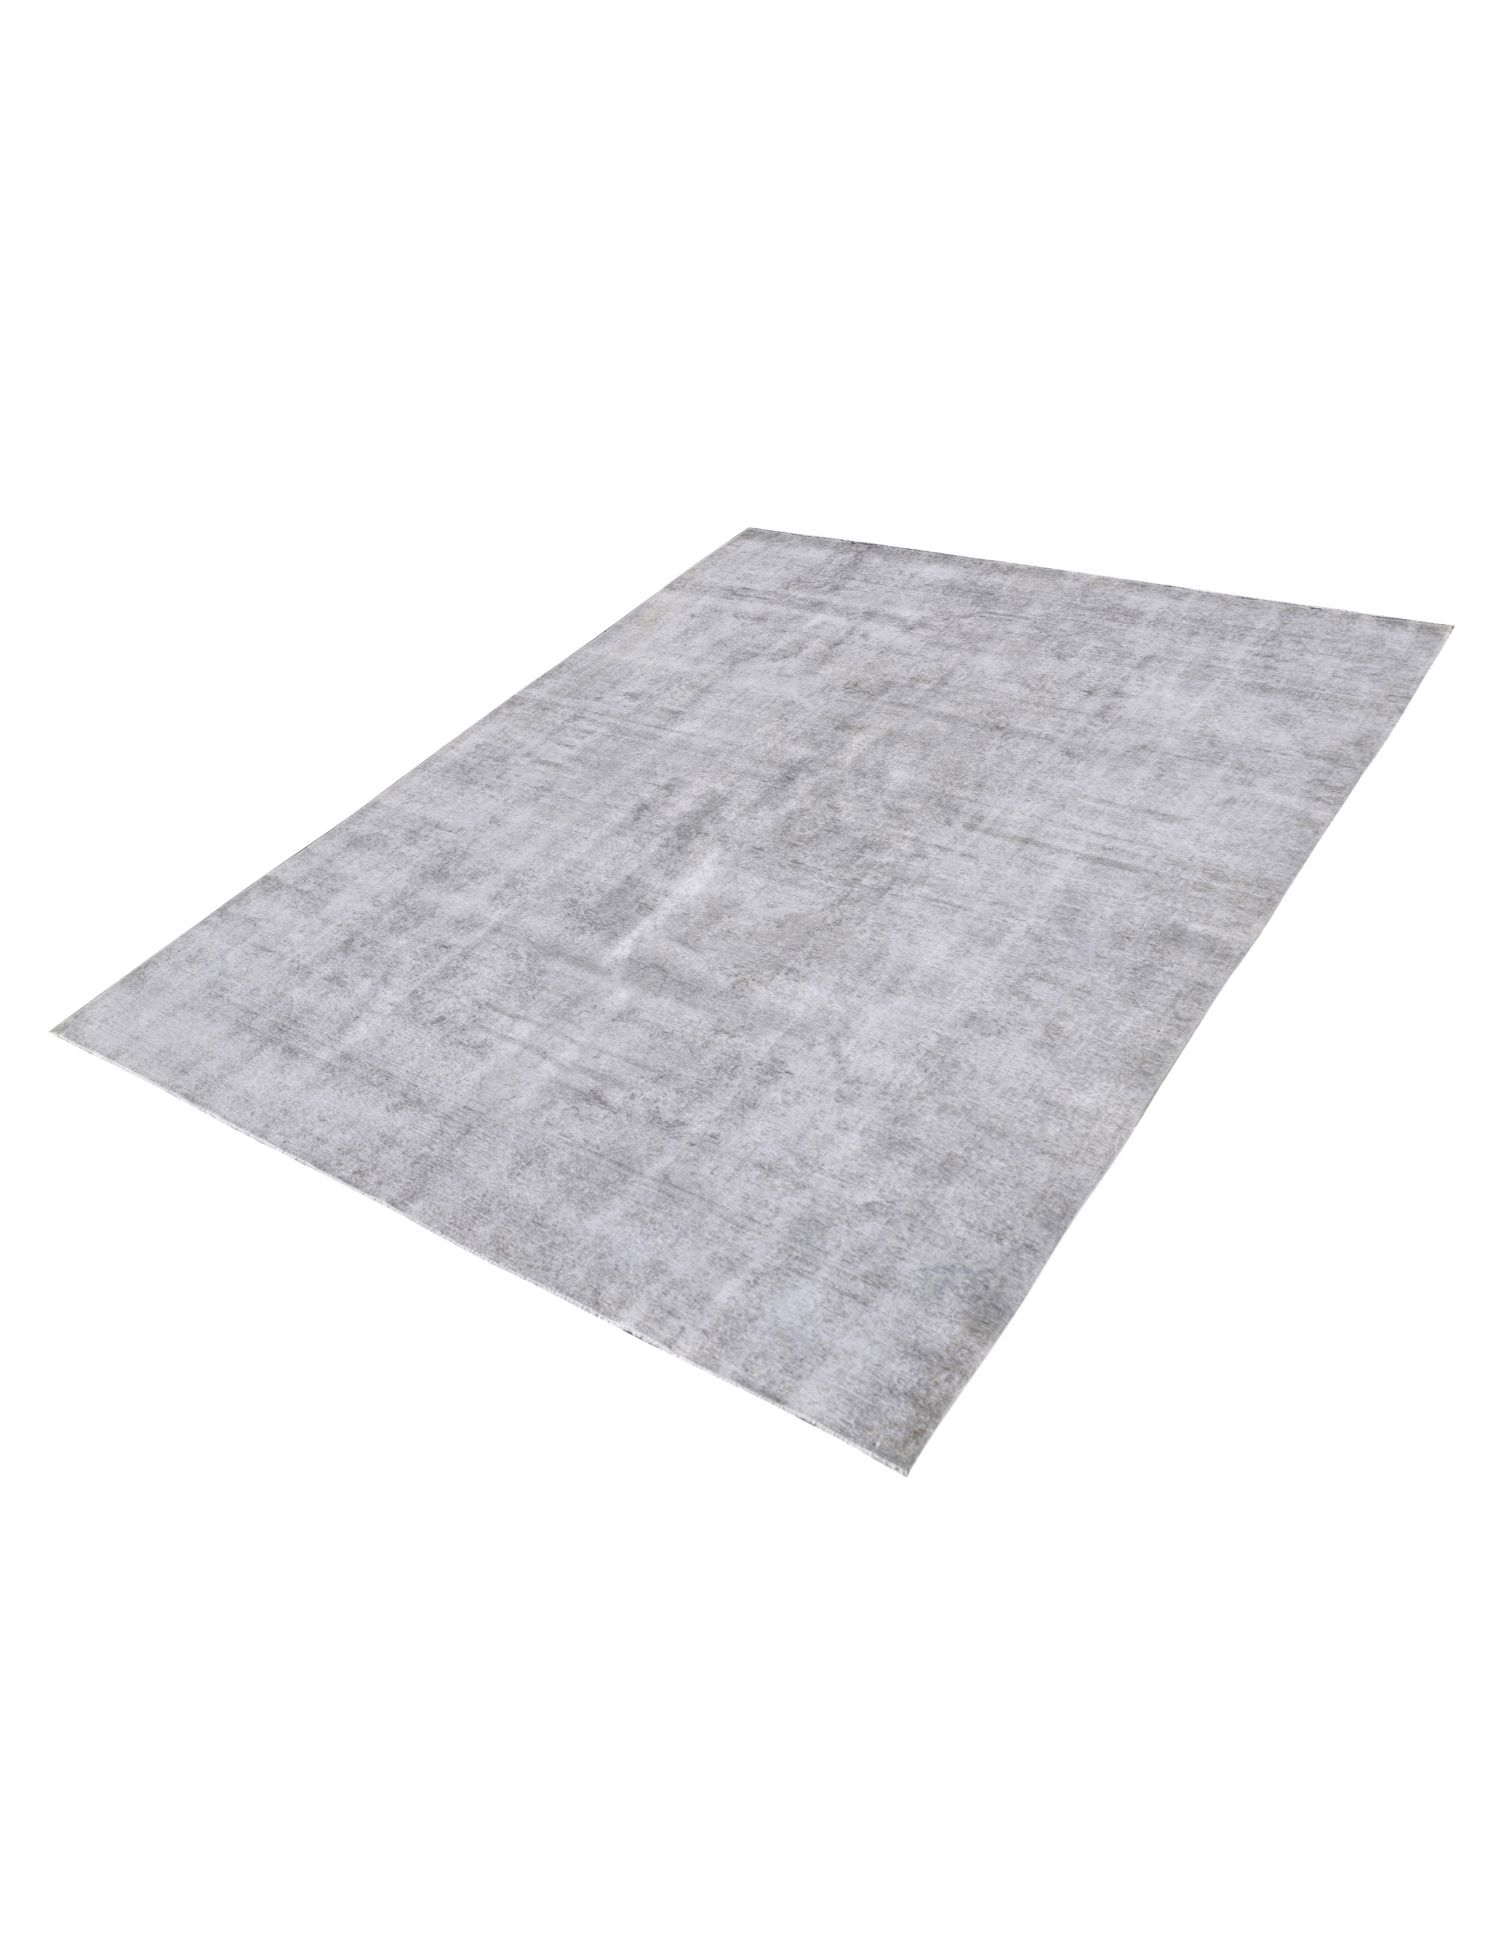 Vintage Carpet  grey <br/>377 x 271 cm